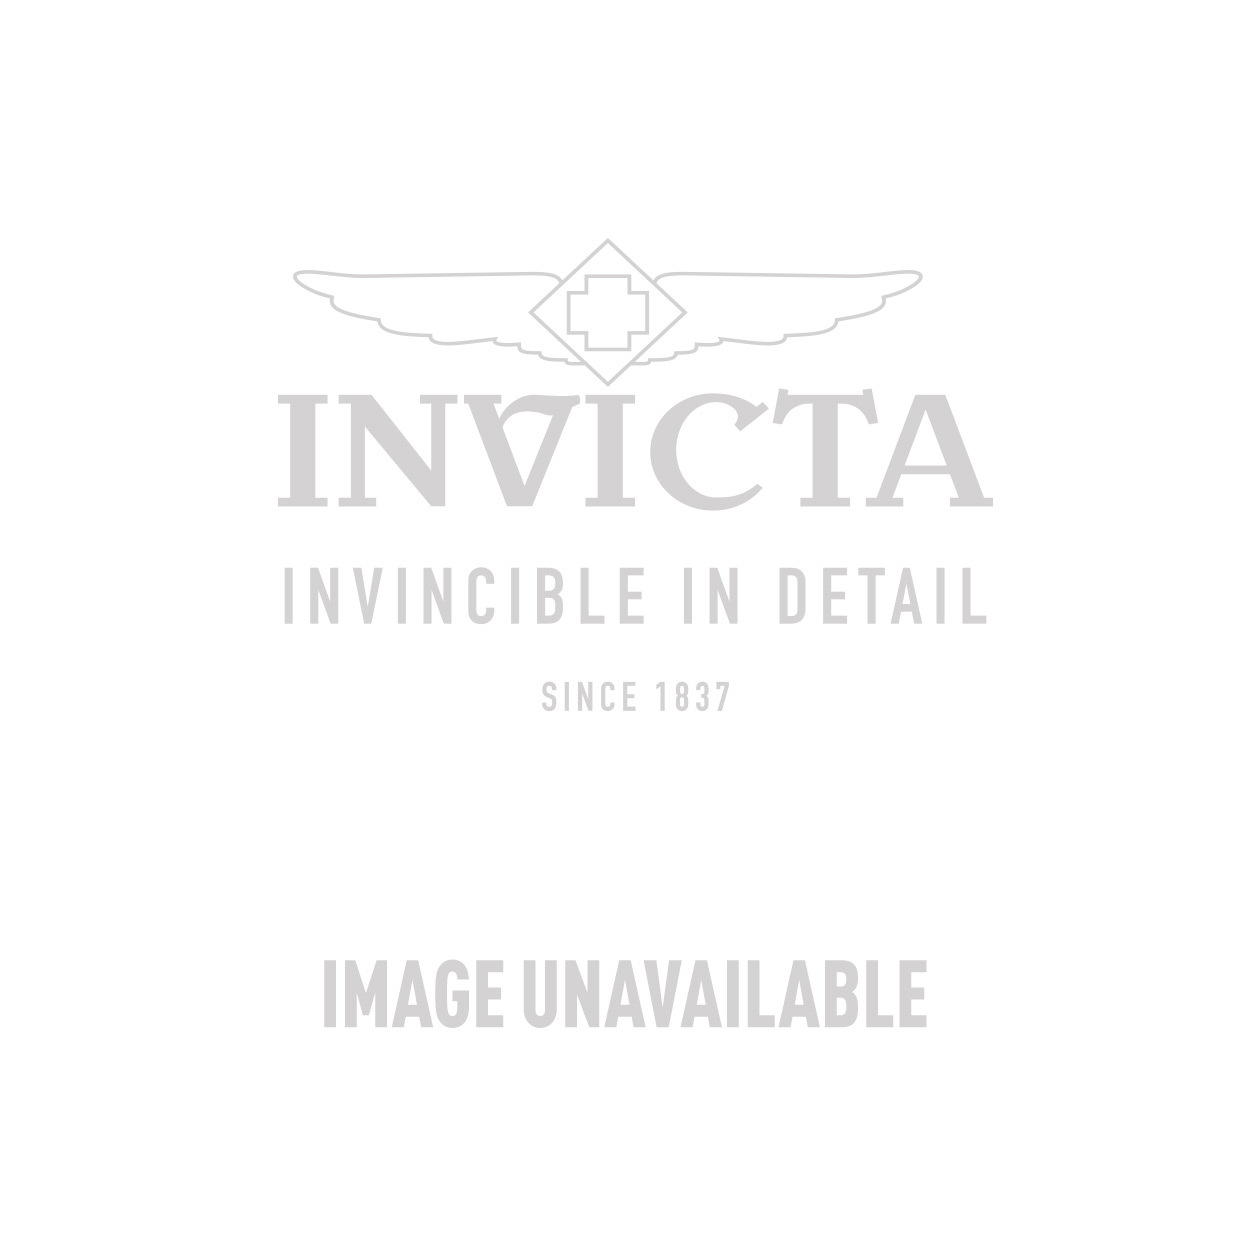 Invicta Angel Swiss Movement Quartz Watch - Stainless Steel case with Black tone Polyurethane band - Model 0487